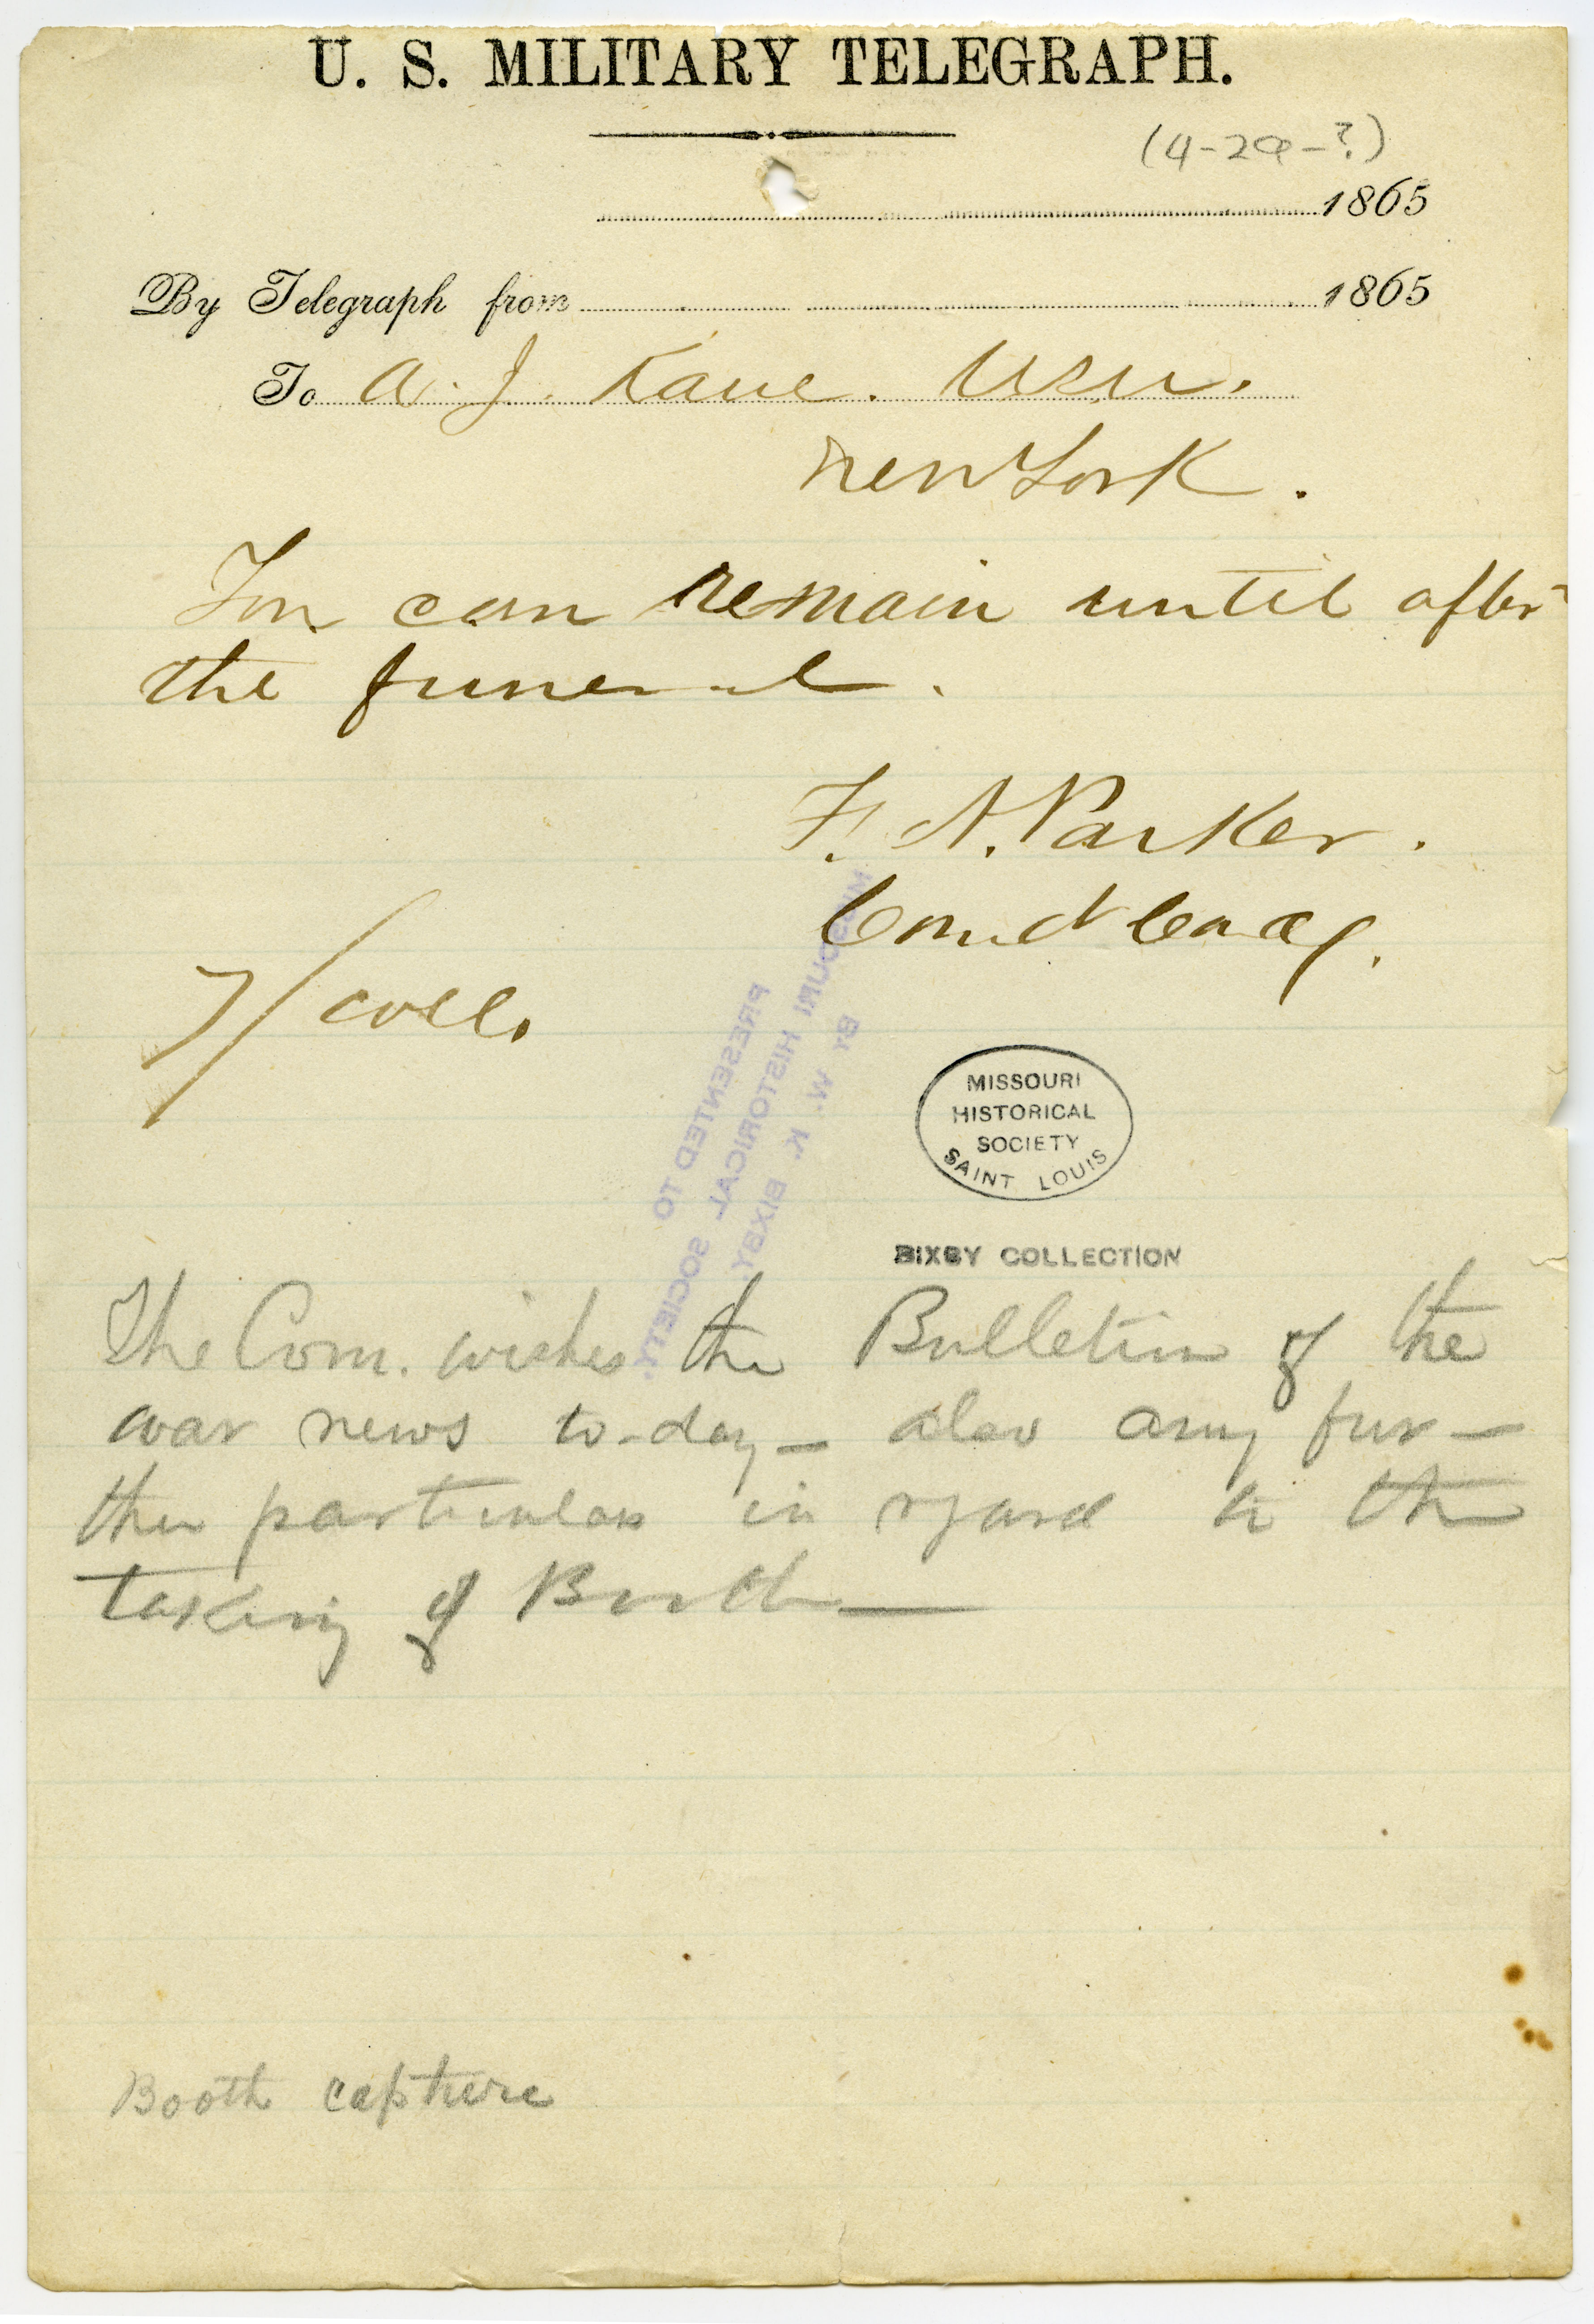 United States Military Telegraph of F.A. Parker to A.J. Kane, New York, [April 29], 1865